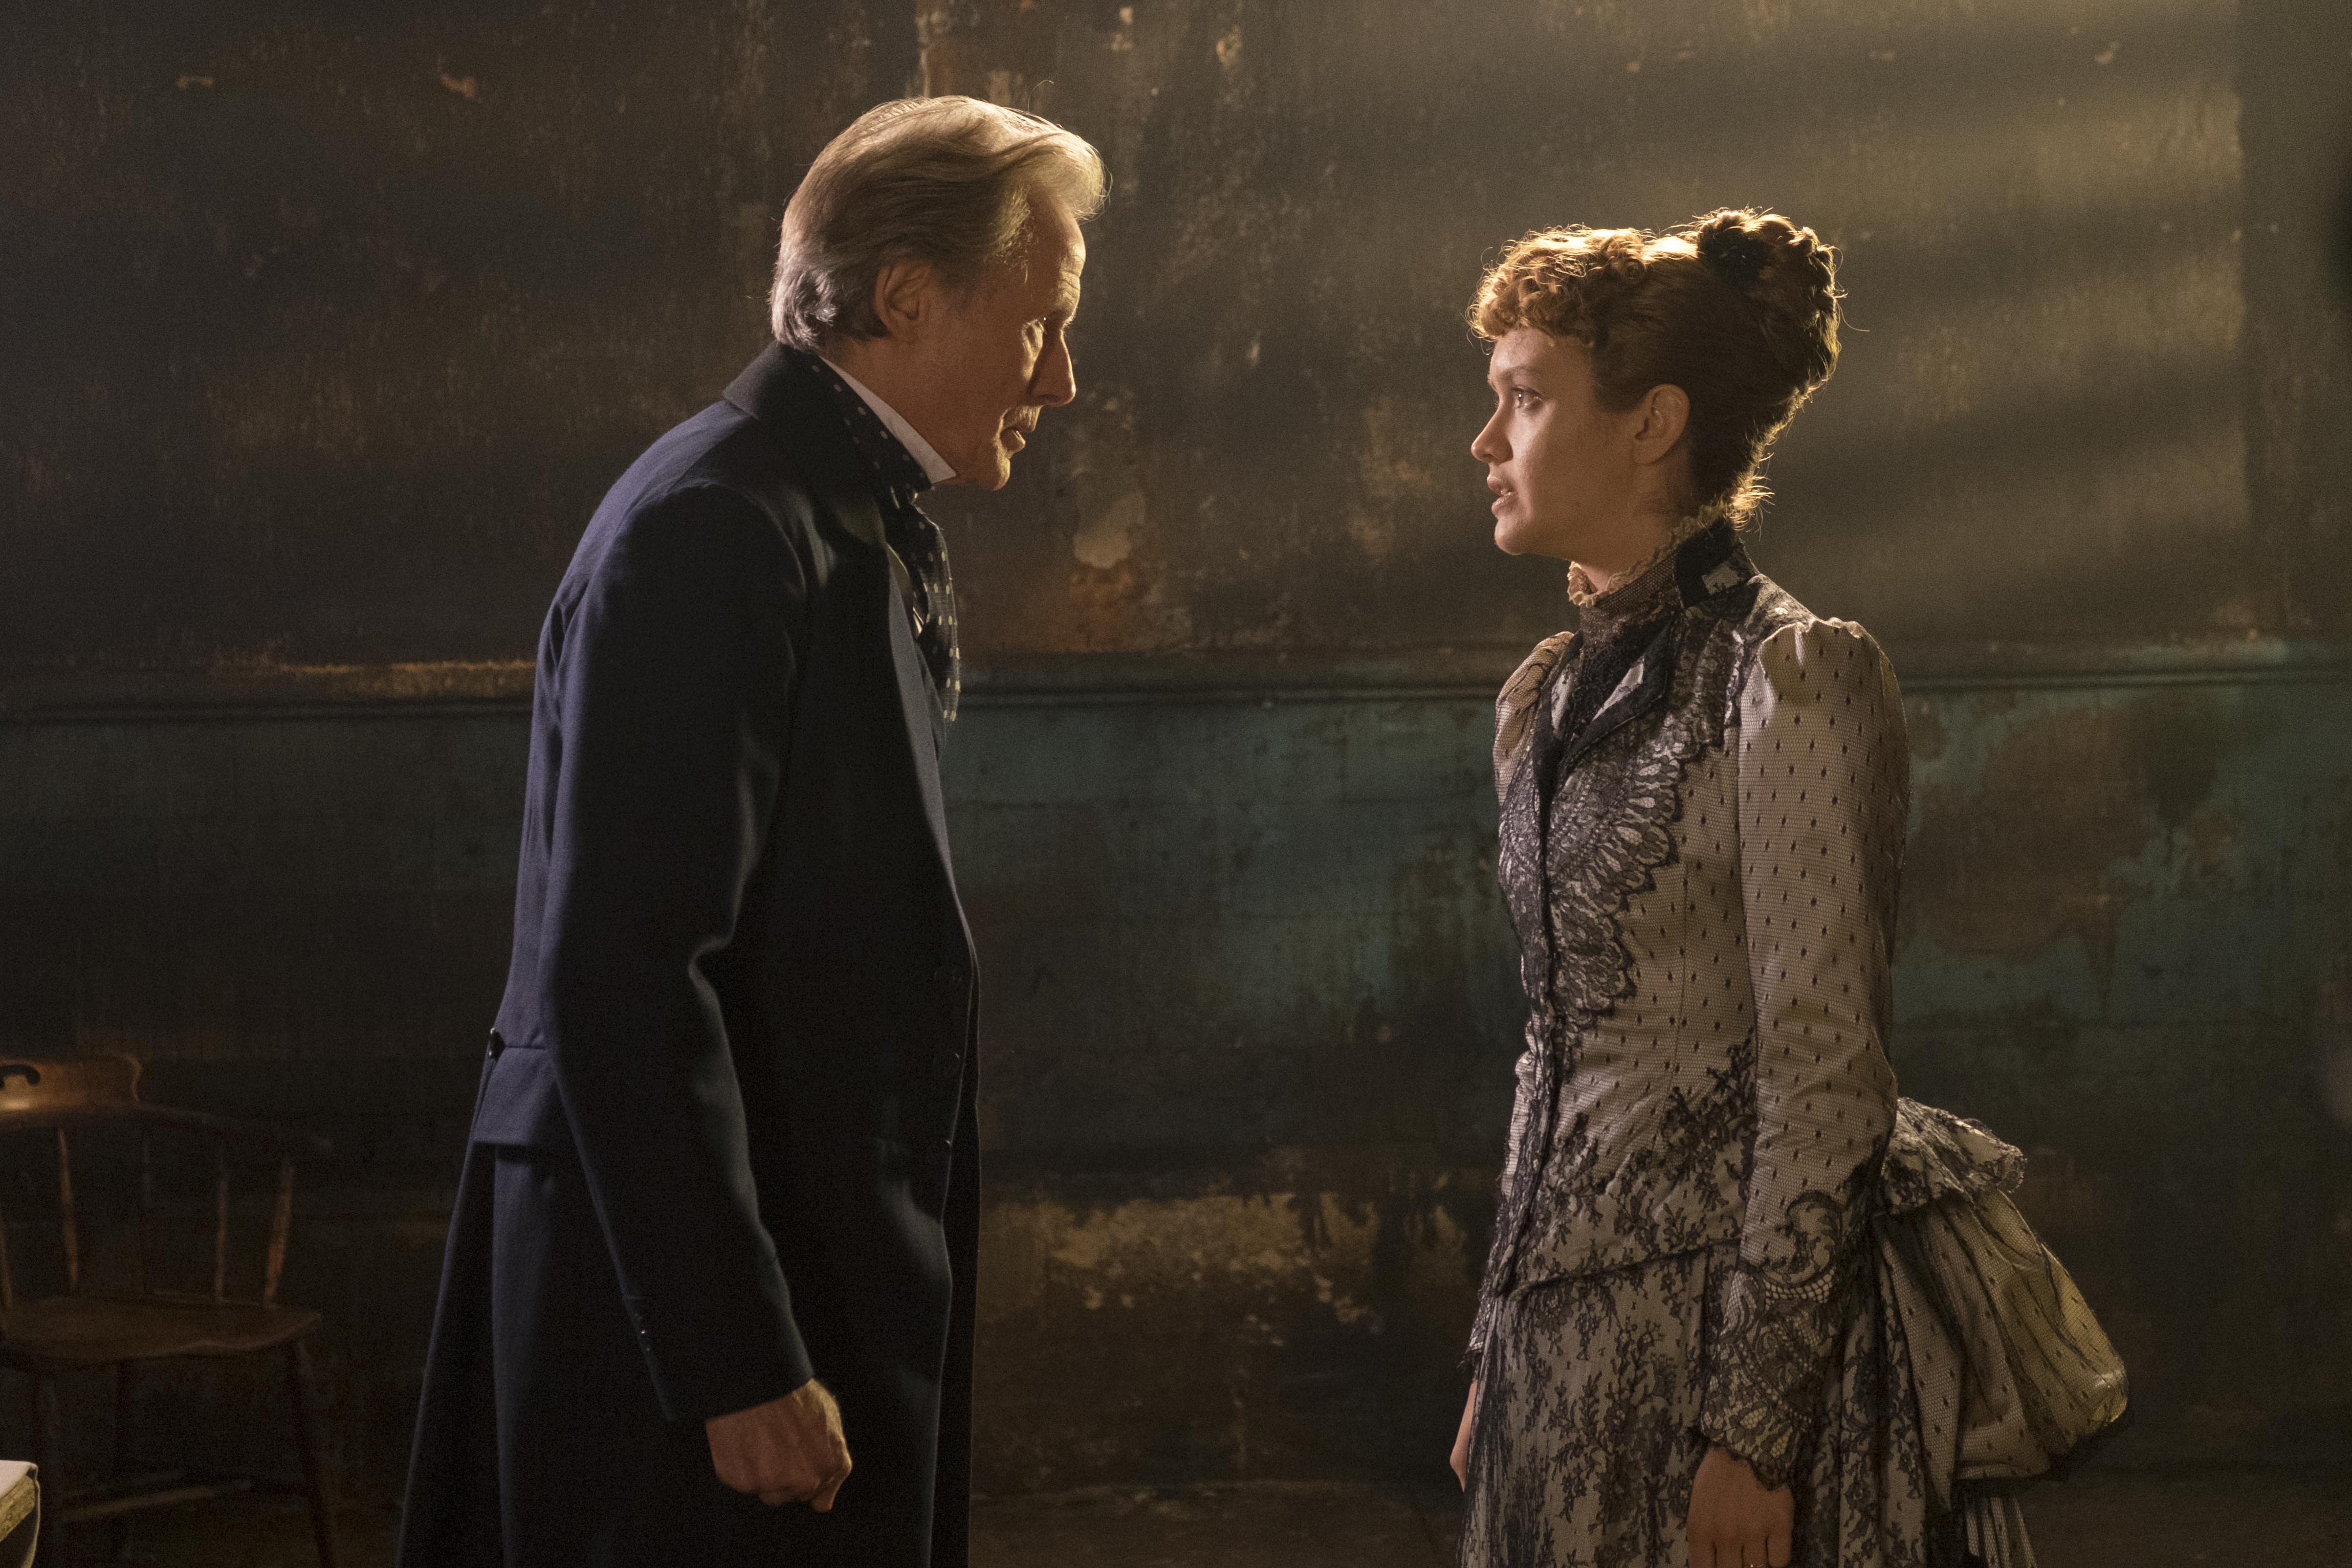 limehousegolemstill1 - Book-to-Film Adaptation of The Limehouse Golem Acquired By RLJ Entertainment